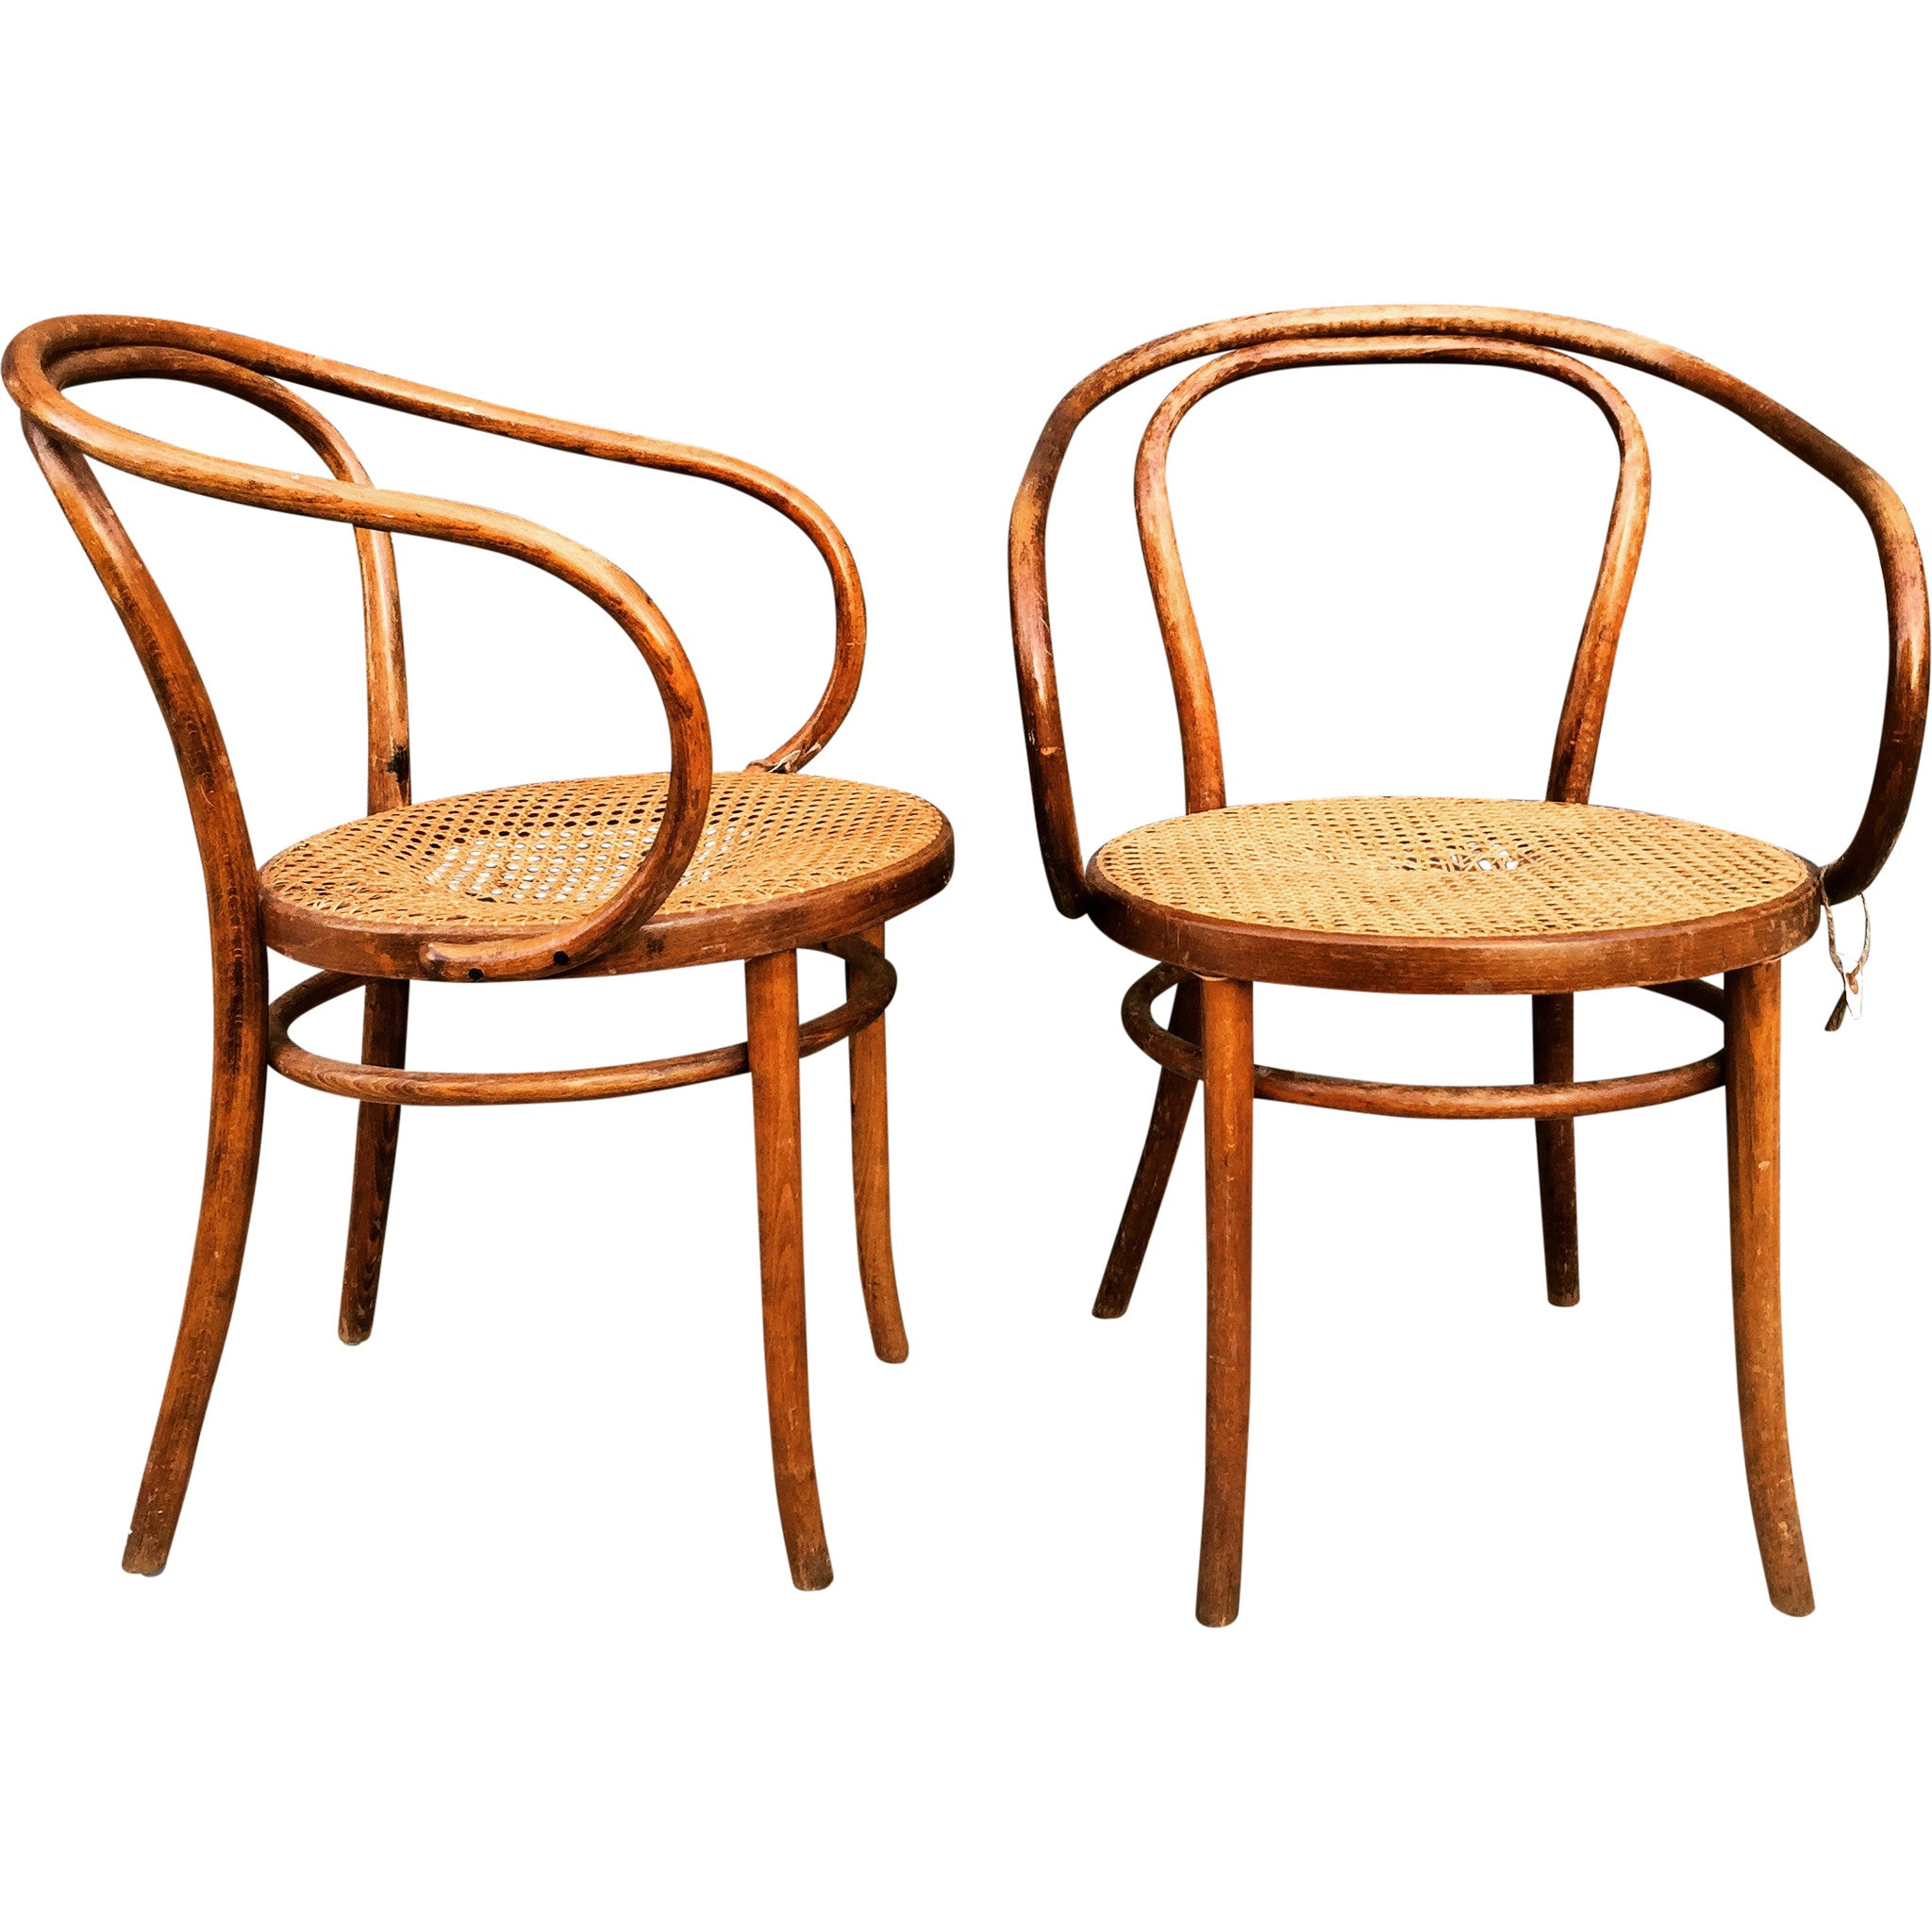 Brand new Vintage Thonet Cane Chairs - Barefoot Dwelling BX47